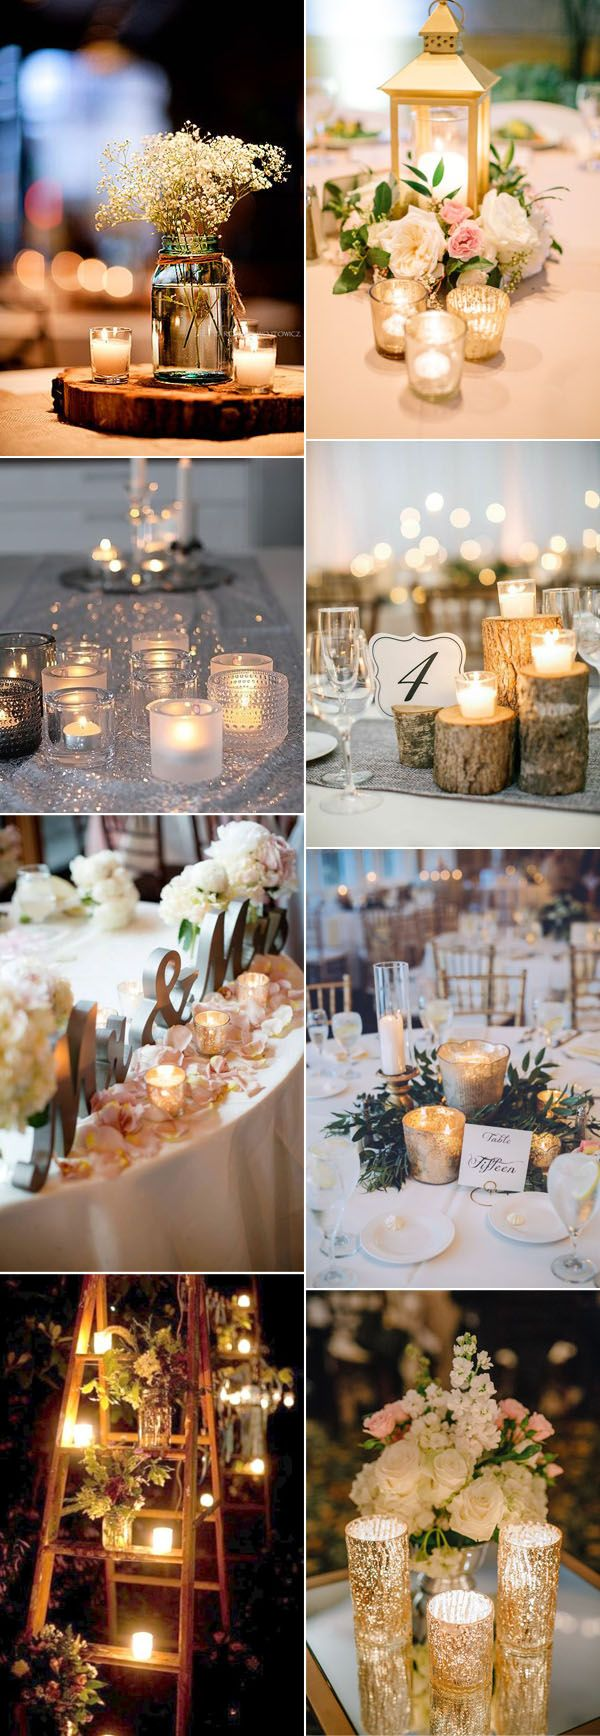 50+ Fancy Candlelight Ideas to Add Romance to Your Weddings is part of Wedding decorations - There's really no other lighting evokes romance quite like flickering candlelight  Classy, timeless and ohso pretty, wedding candles ideas could show you an inexpensive way to make your wedding day more romant